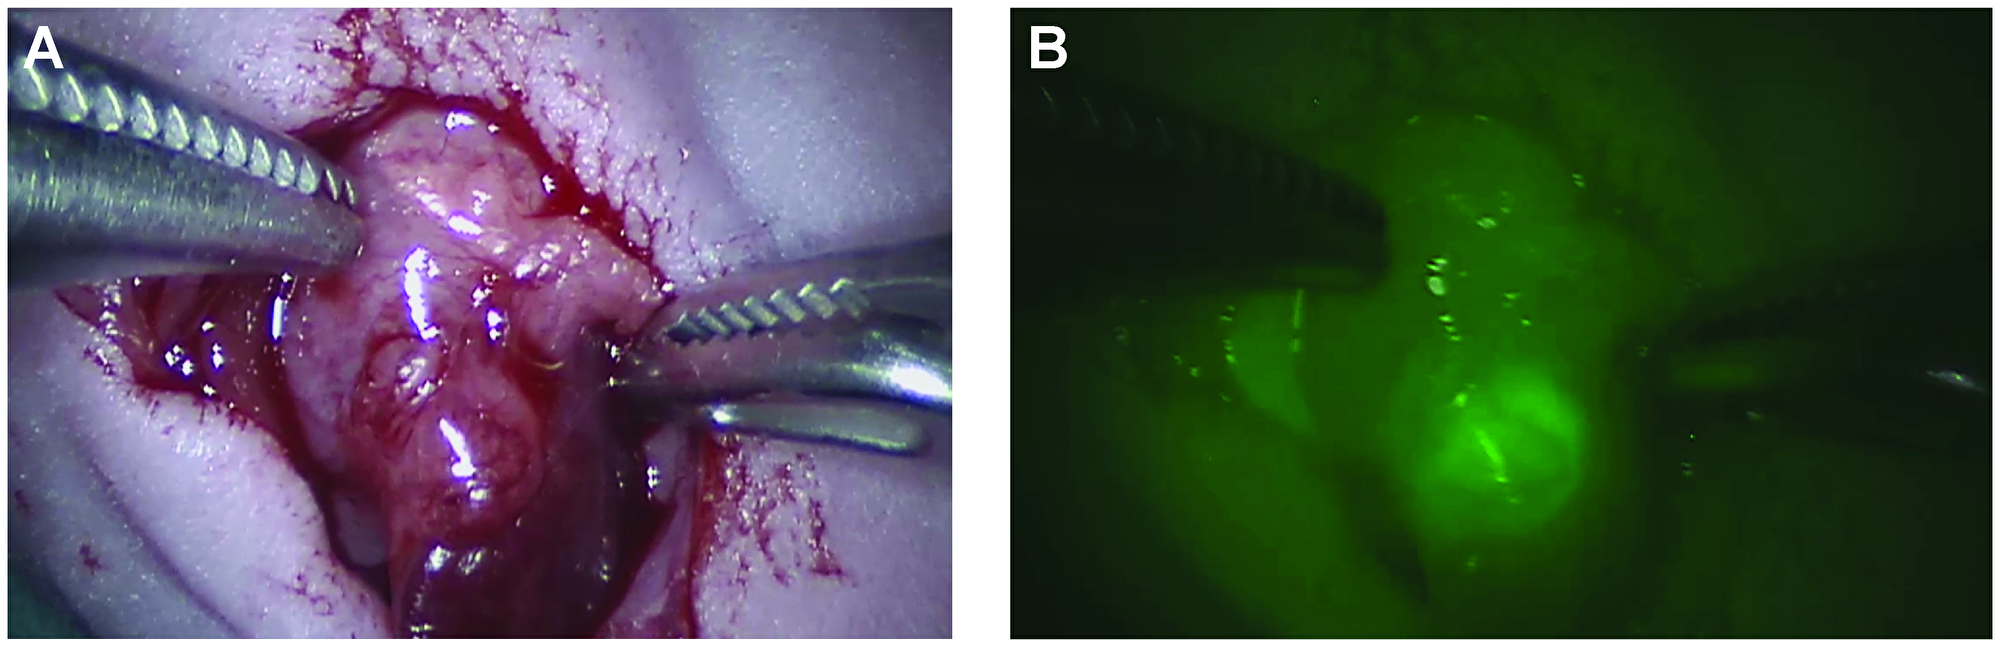 Images of a primary orthotopic pancreas human xenograft tumor as seen with the robotic Da Vinci® system.